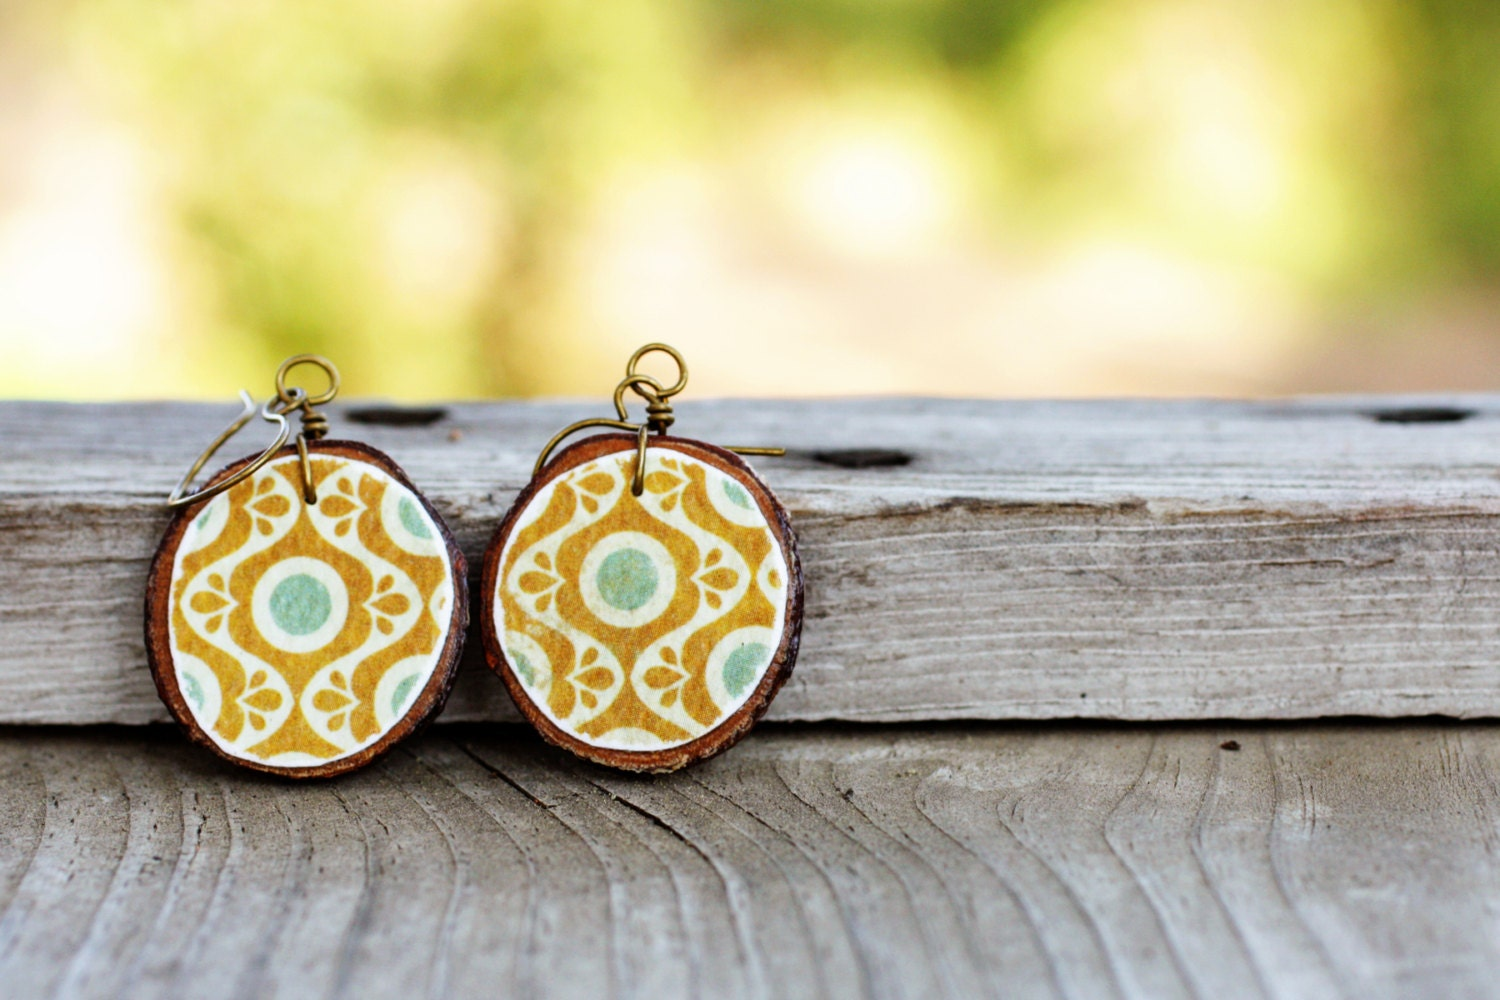 Handcut wooden earrings Vintage inspired earthy natural jewelry Handmade by The Paisley Mill in San Diego California . SoPHie - ShelleySchott